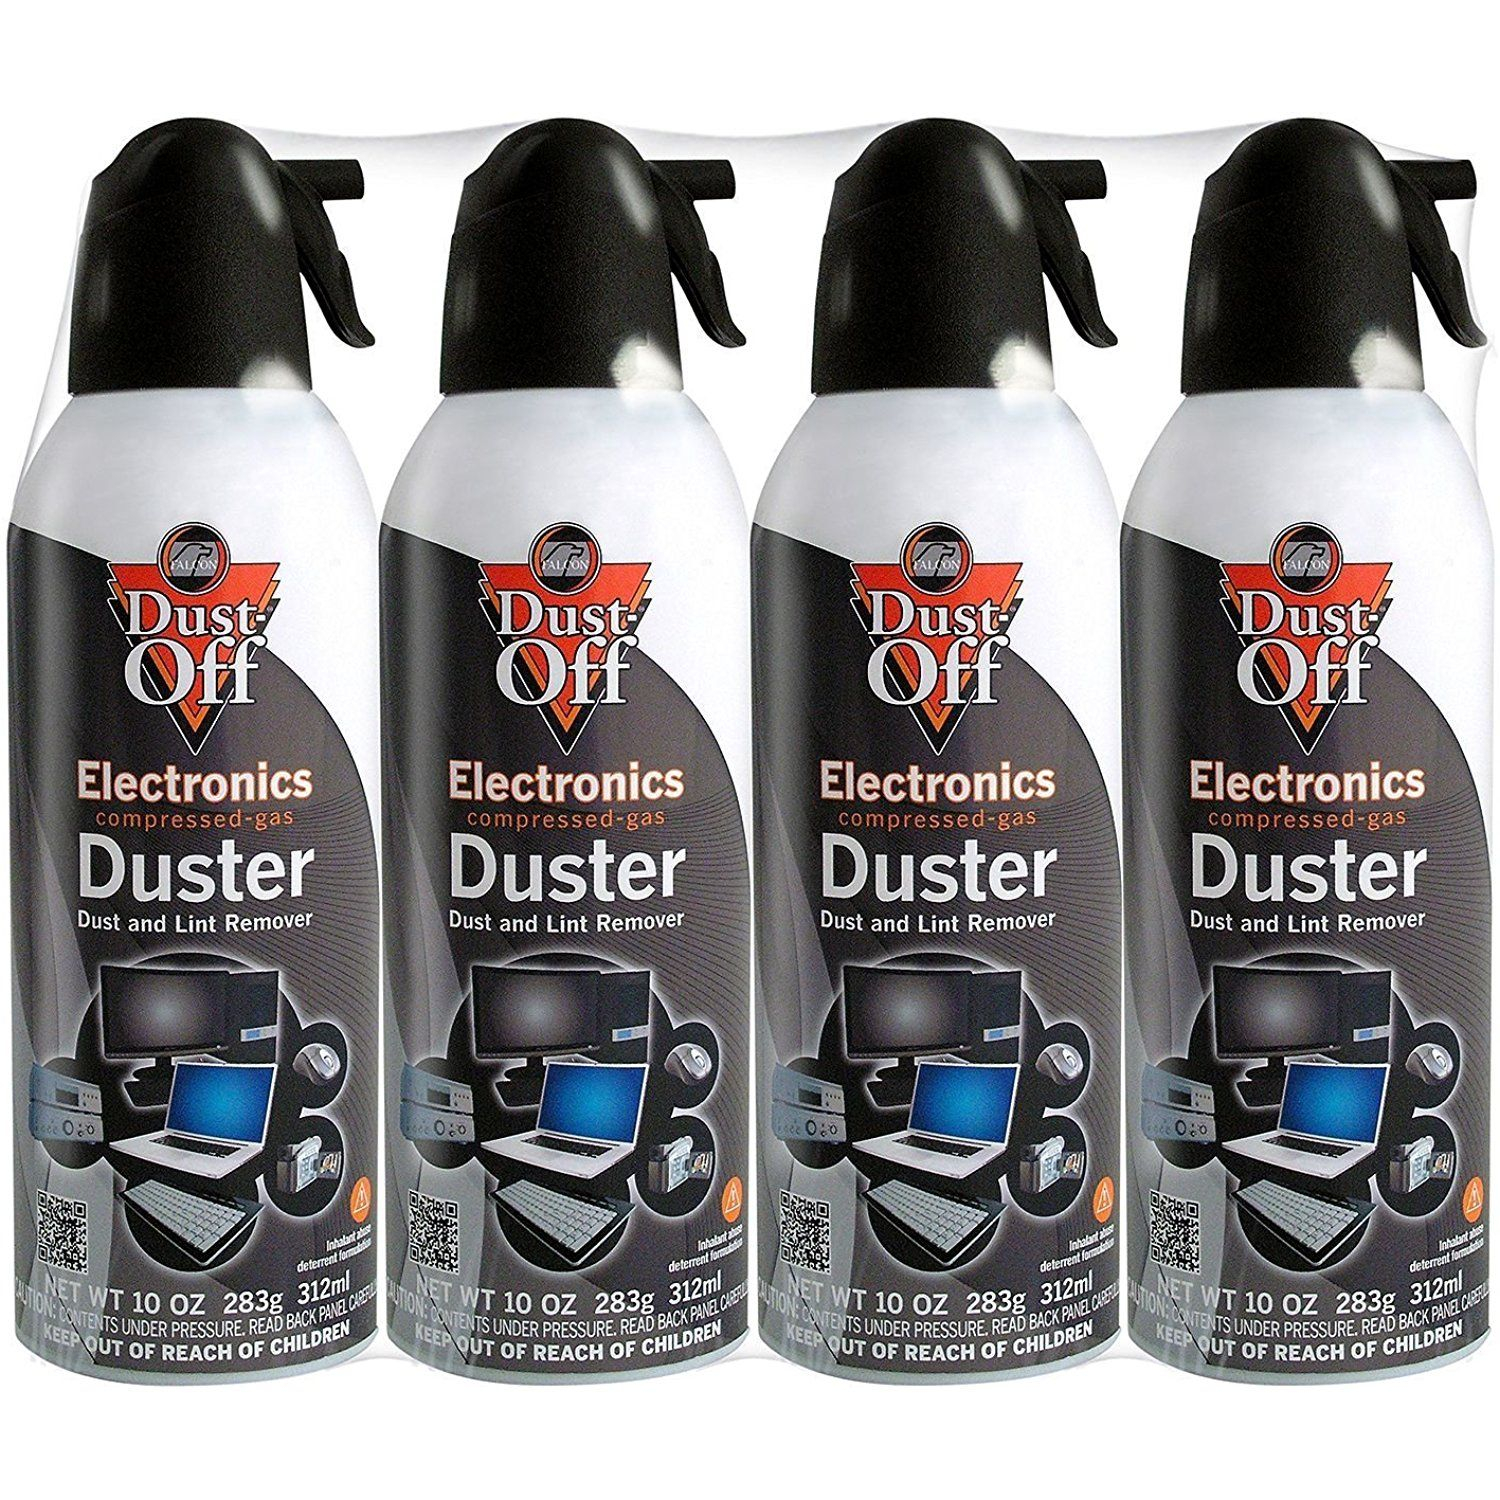 Dustoff compressed gas duster pack of 4 check out